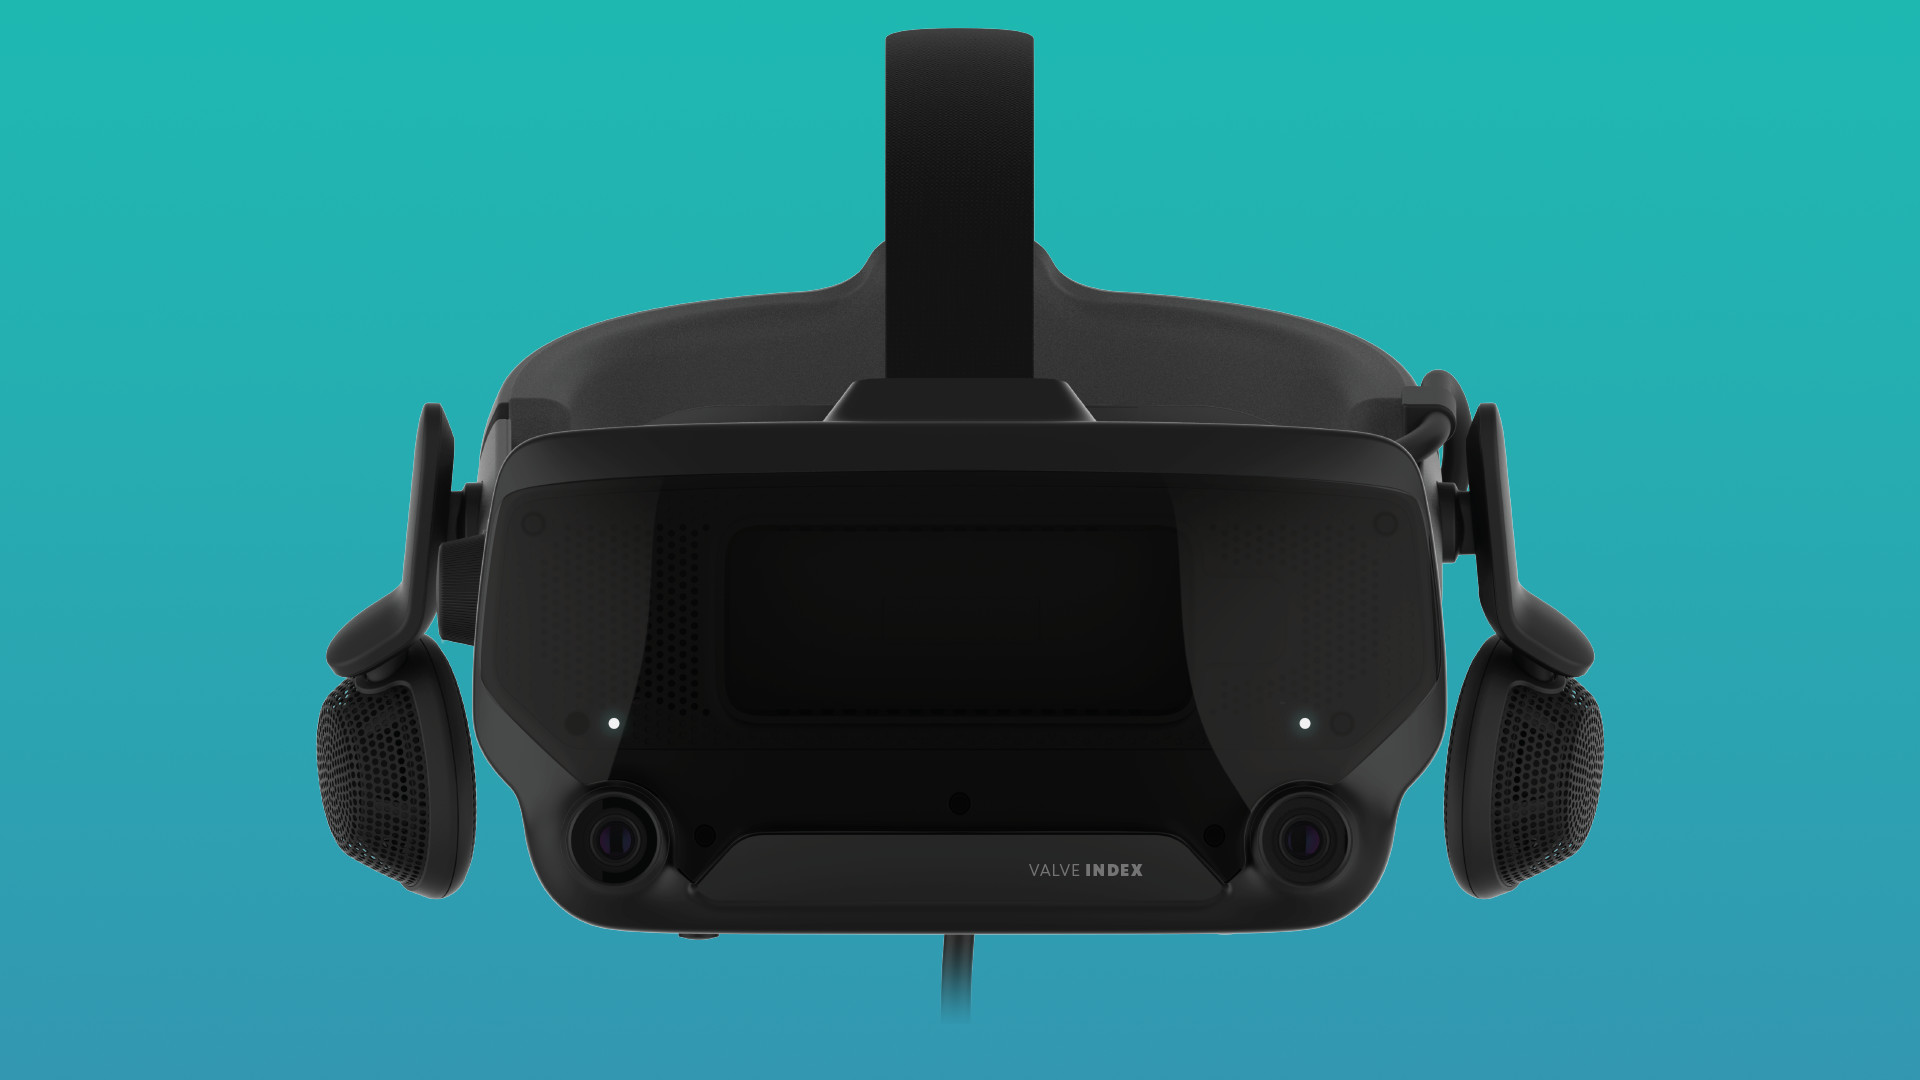 Valve have confirmed Linux support for their Valve Index VR headset, pre-orders on May 1st